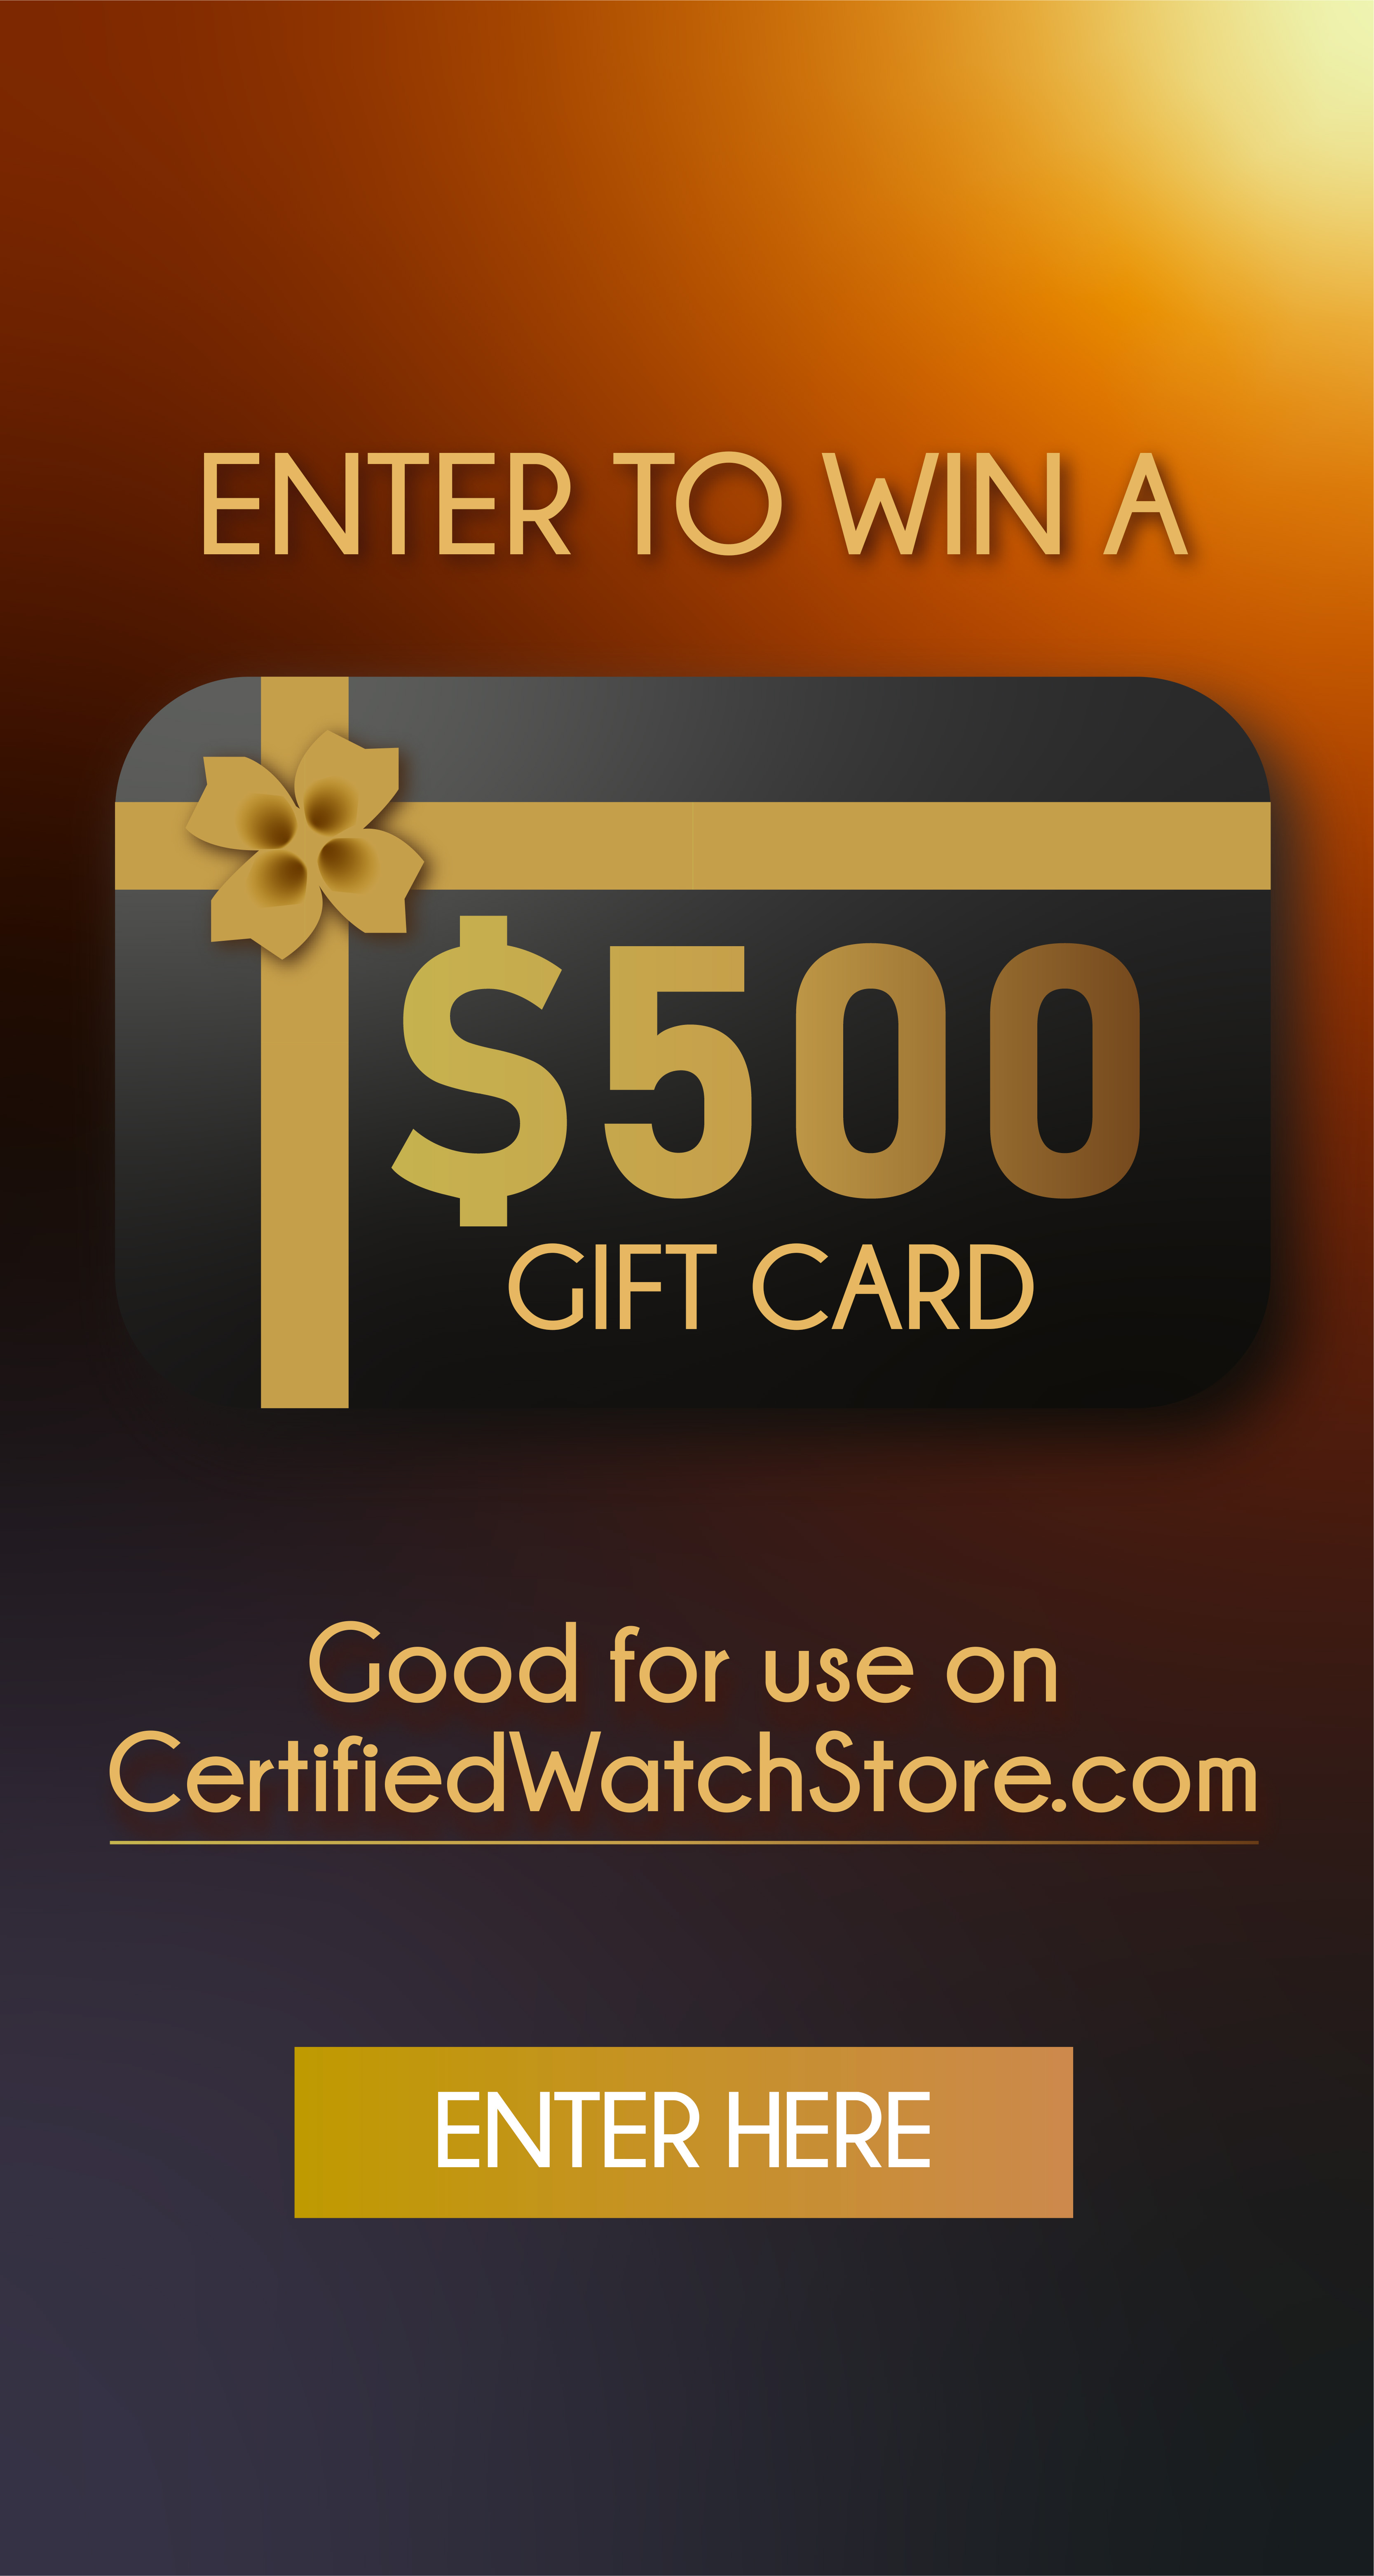 Enter our November Prize drawing for a $500 Giftcard